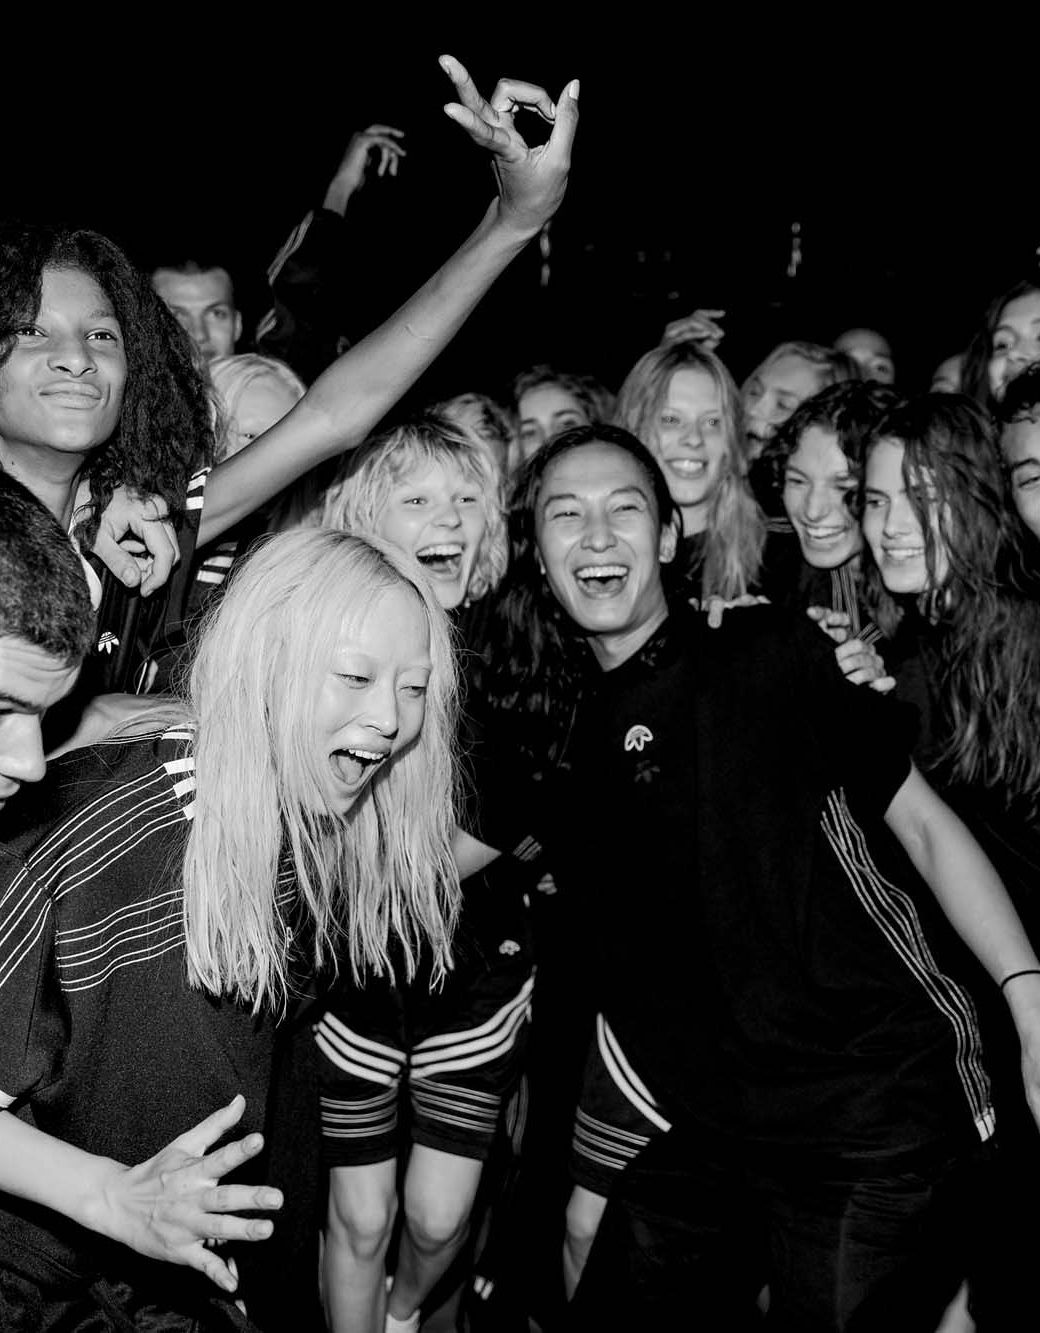 Behind the scenes at Alexander Wang during New York Fashion Week. Photographed by Kevin Tachman.